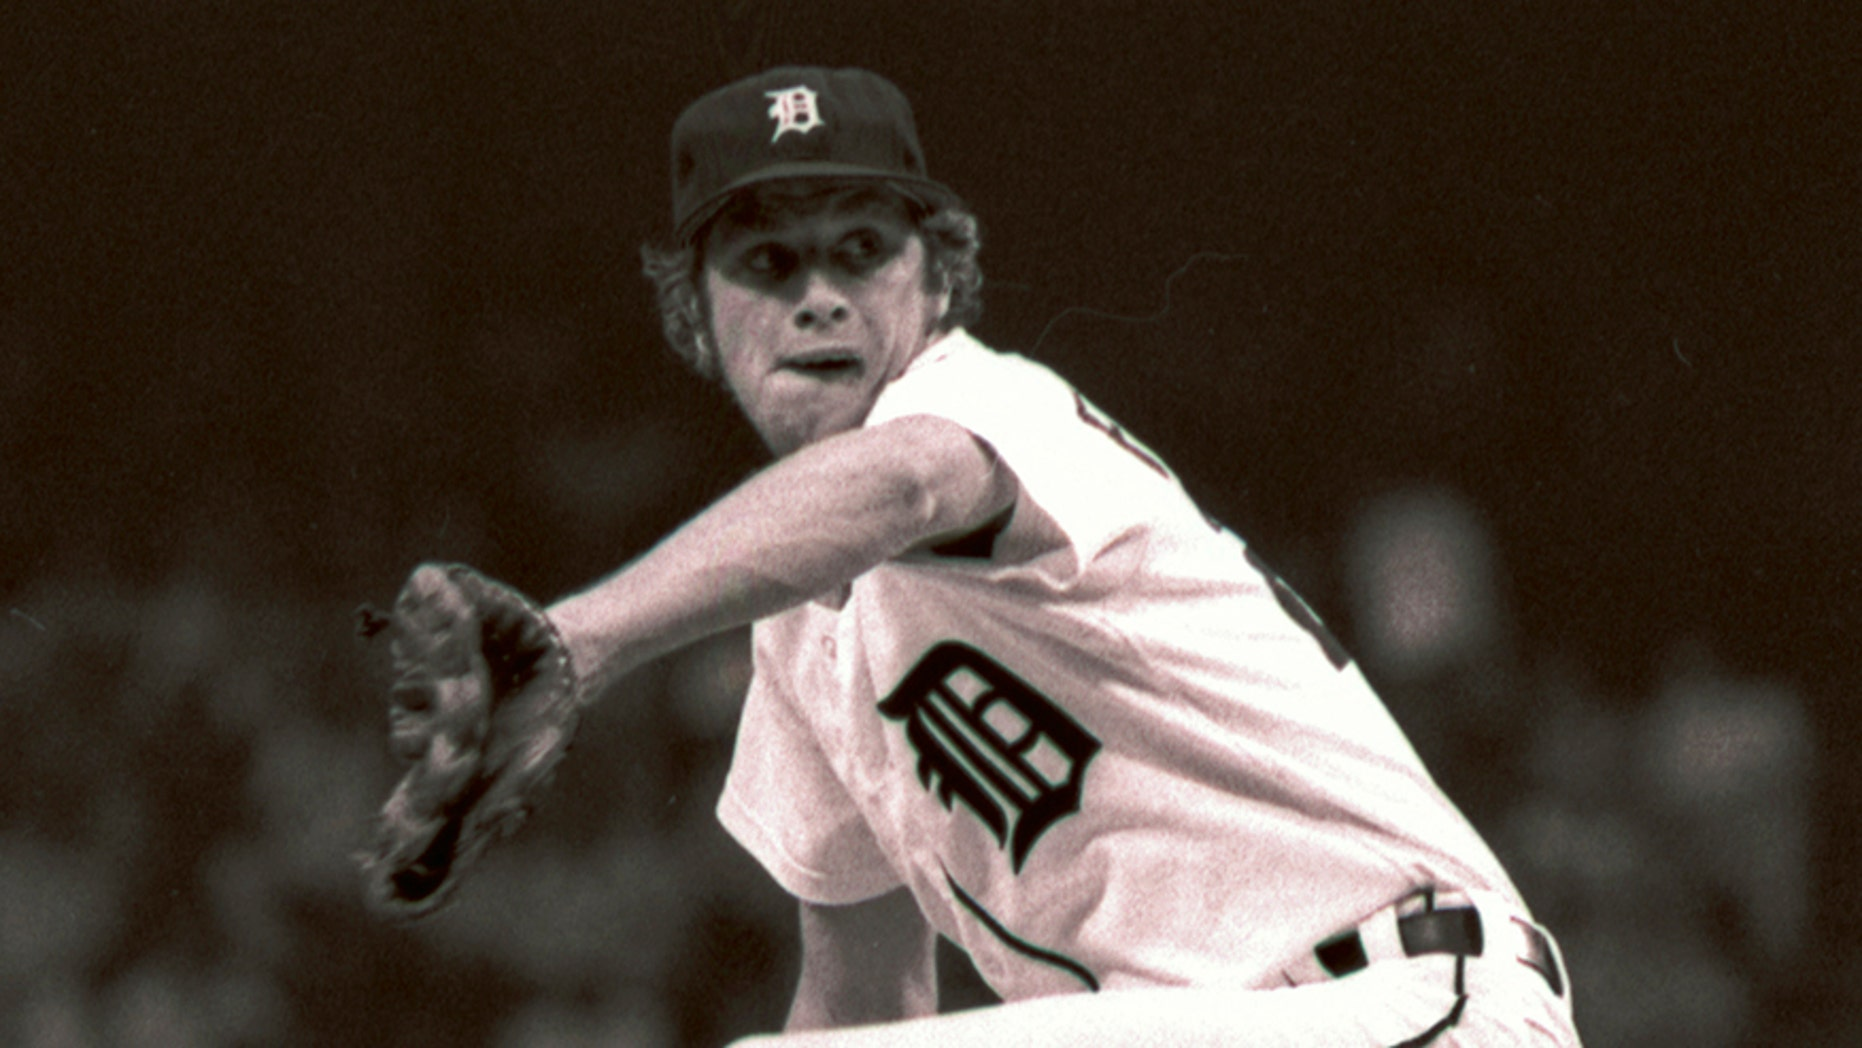 Court records show ex-Detroit Tigers pitcher Mark Fidrych died of asphyxiation in 2009 after his clothing became tangled in a spinning piece of a dump truck he was working on